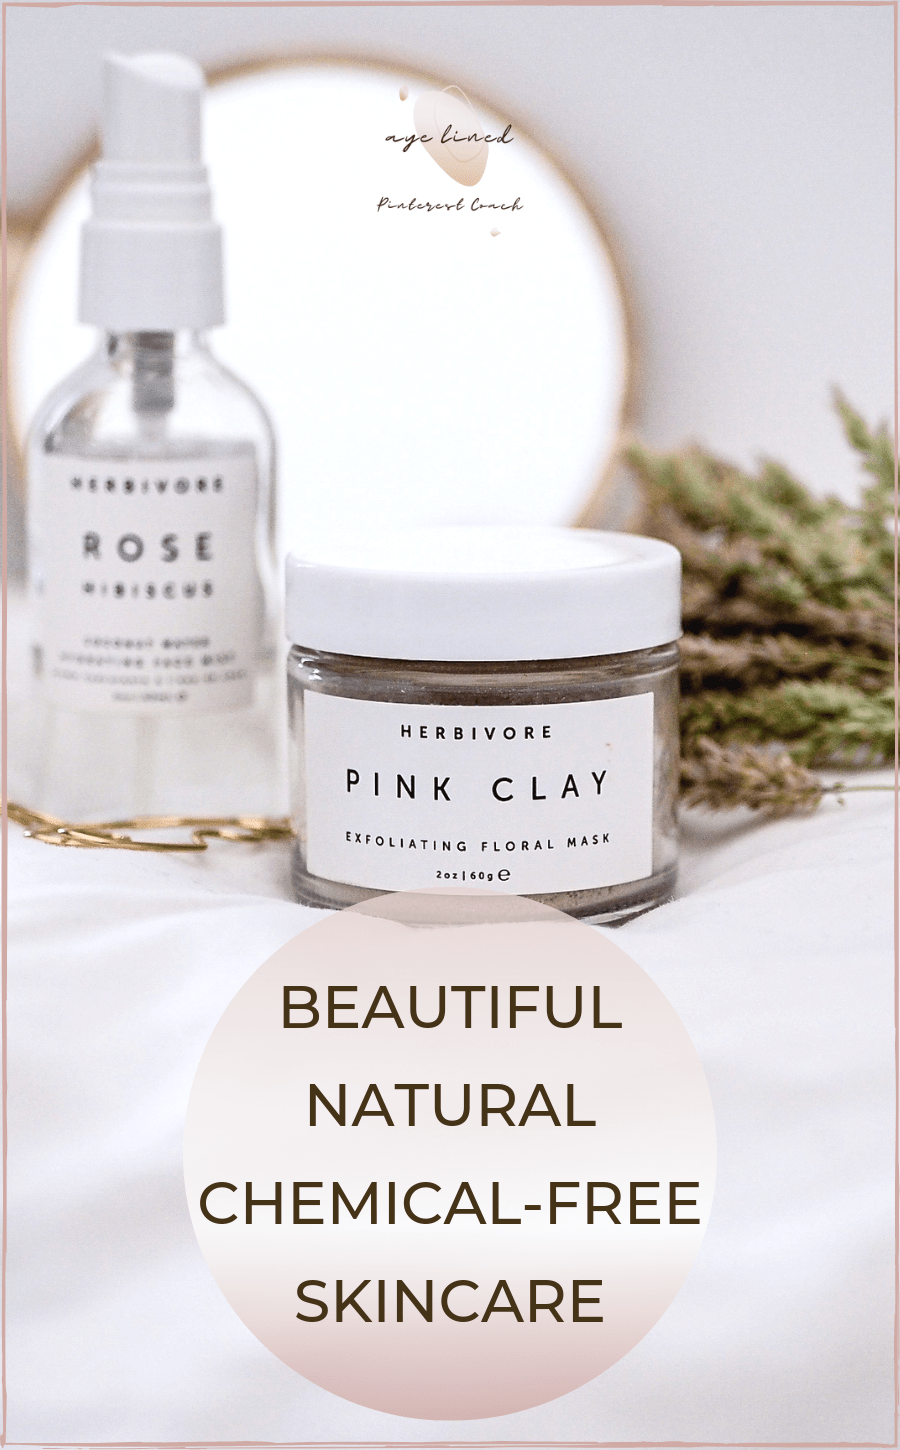 Is Herbivore Botanicals Any Good Aye Lined Uk Scottish Beauty Lifestyle Blog Top Skin Care Products Organic Skin Care Routine Natural Skin Care Ingredients